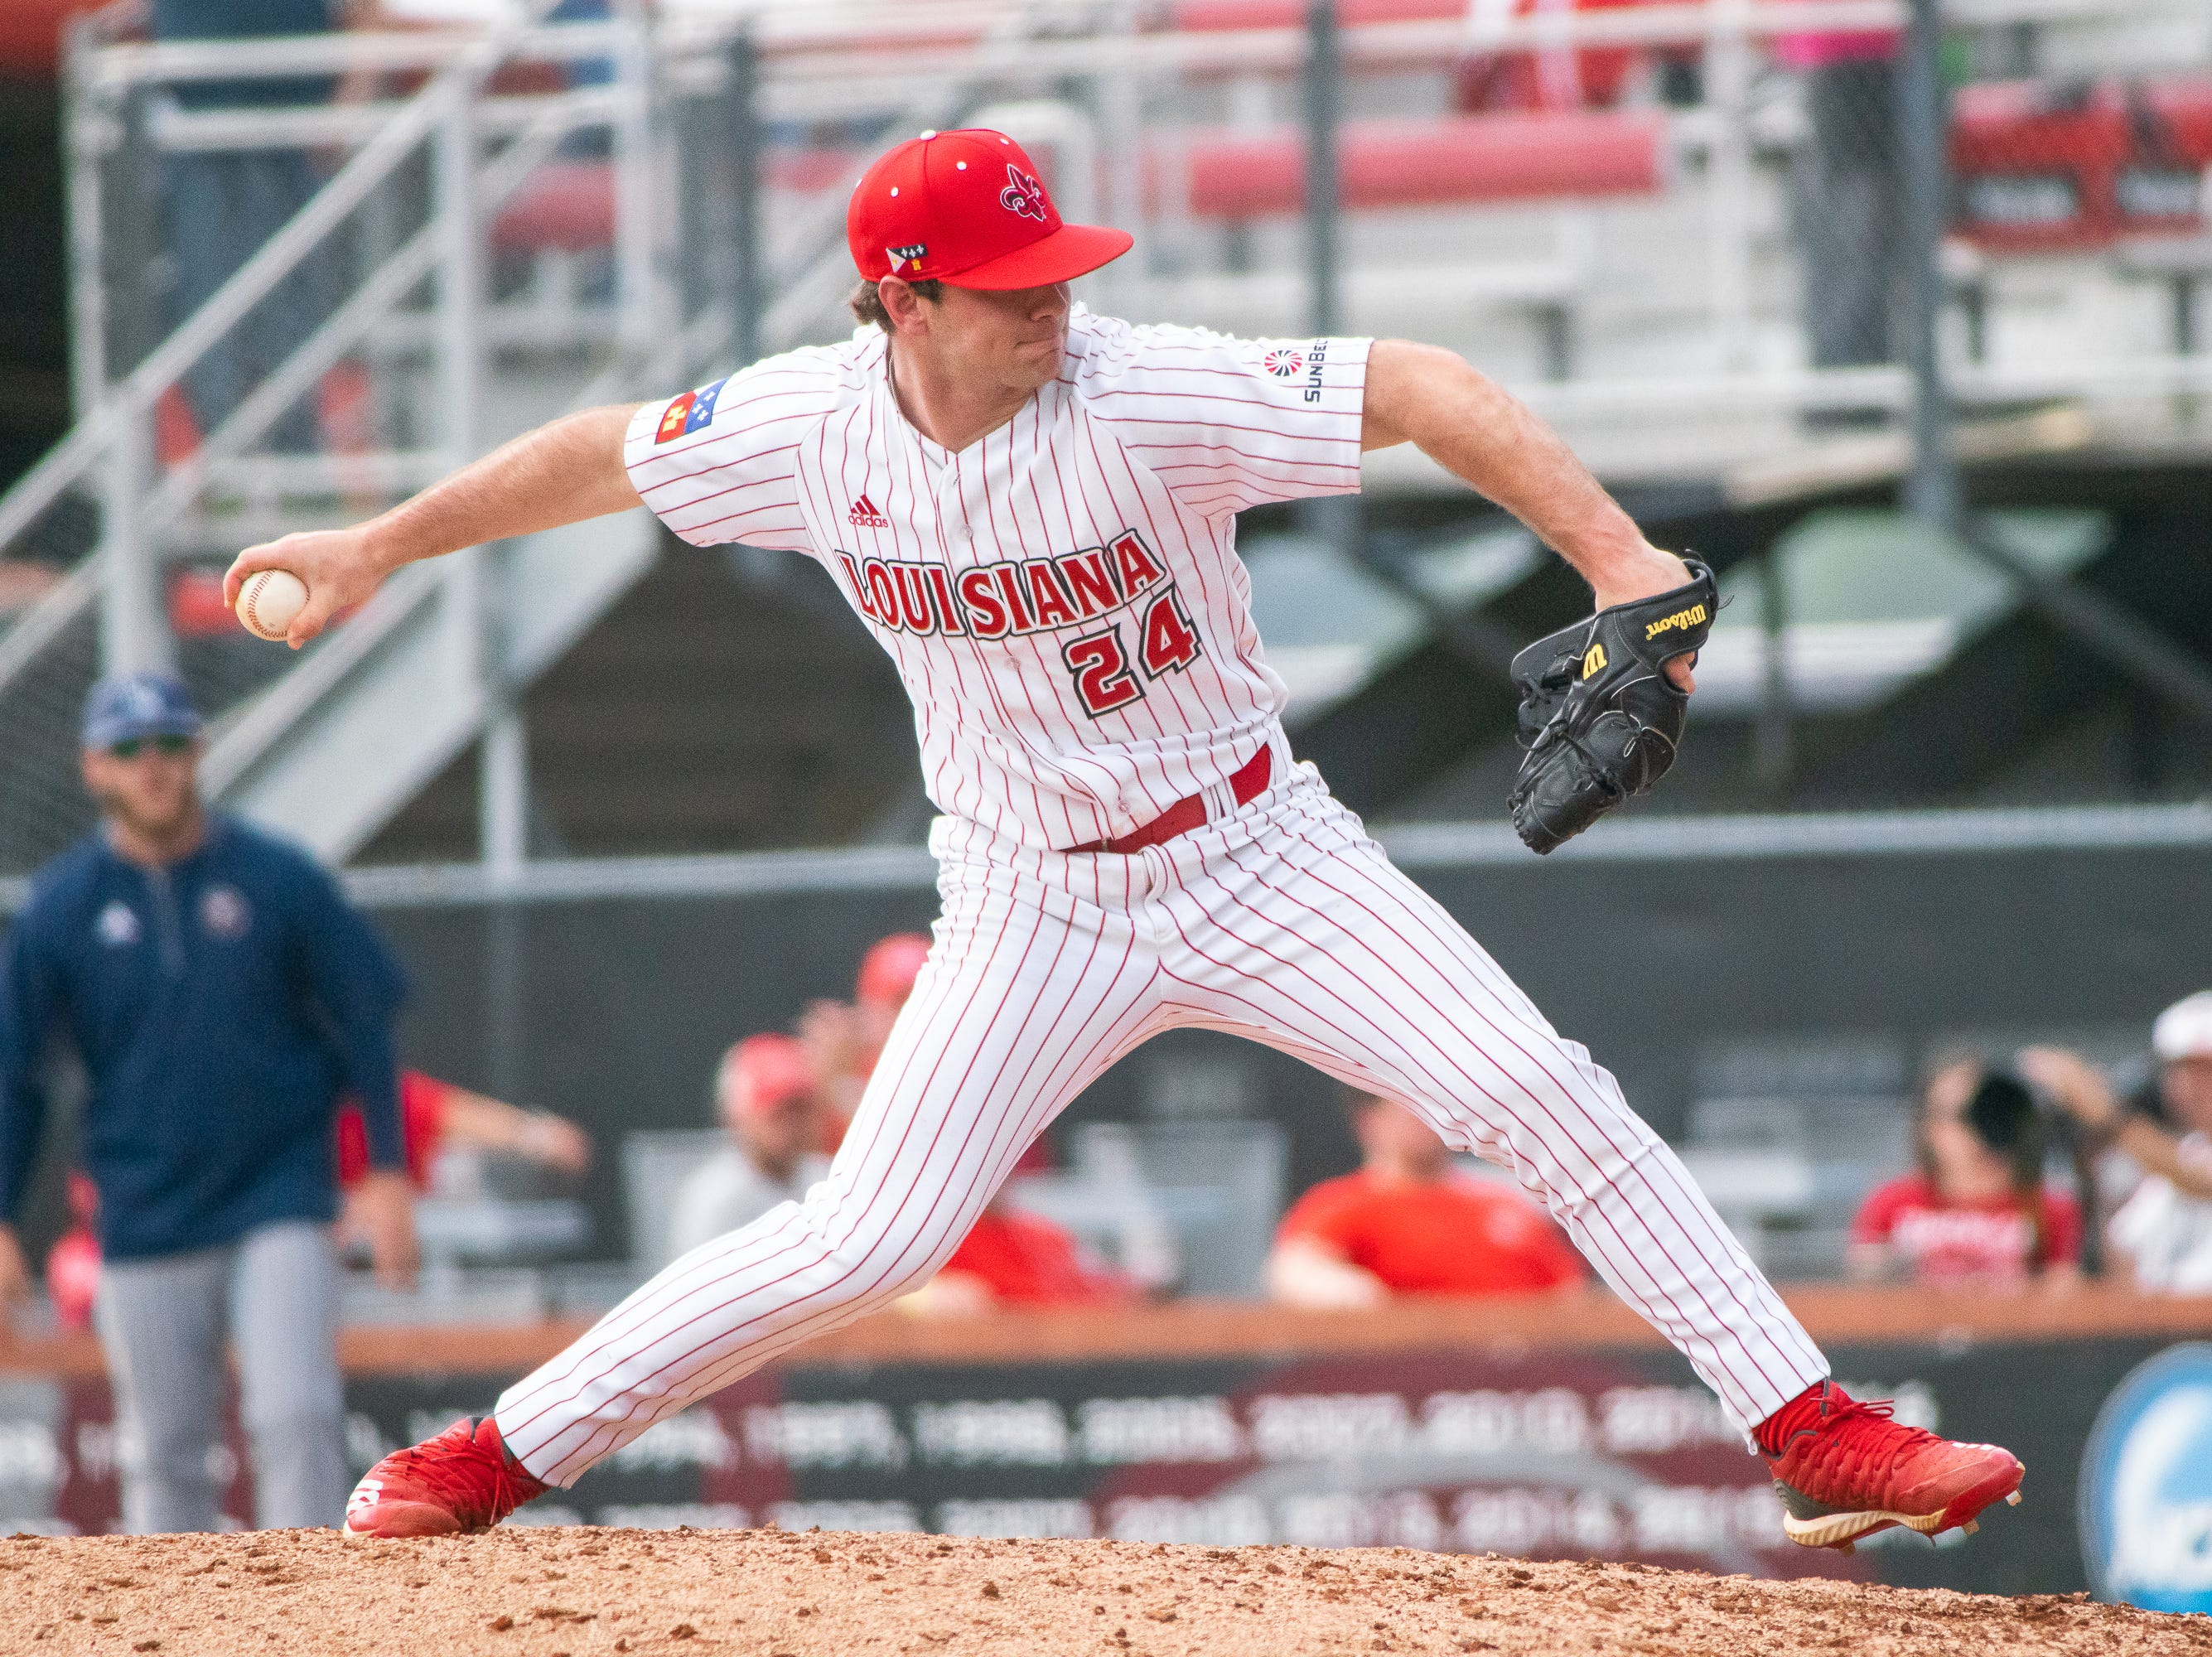 UL's Caleb Armstrong pitches from the mound as the Ragin' Cajuns take on the Loyola Marymount Lions at M.L. Tigue Moore Field on March 10, 2019.